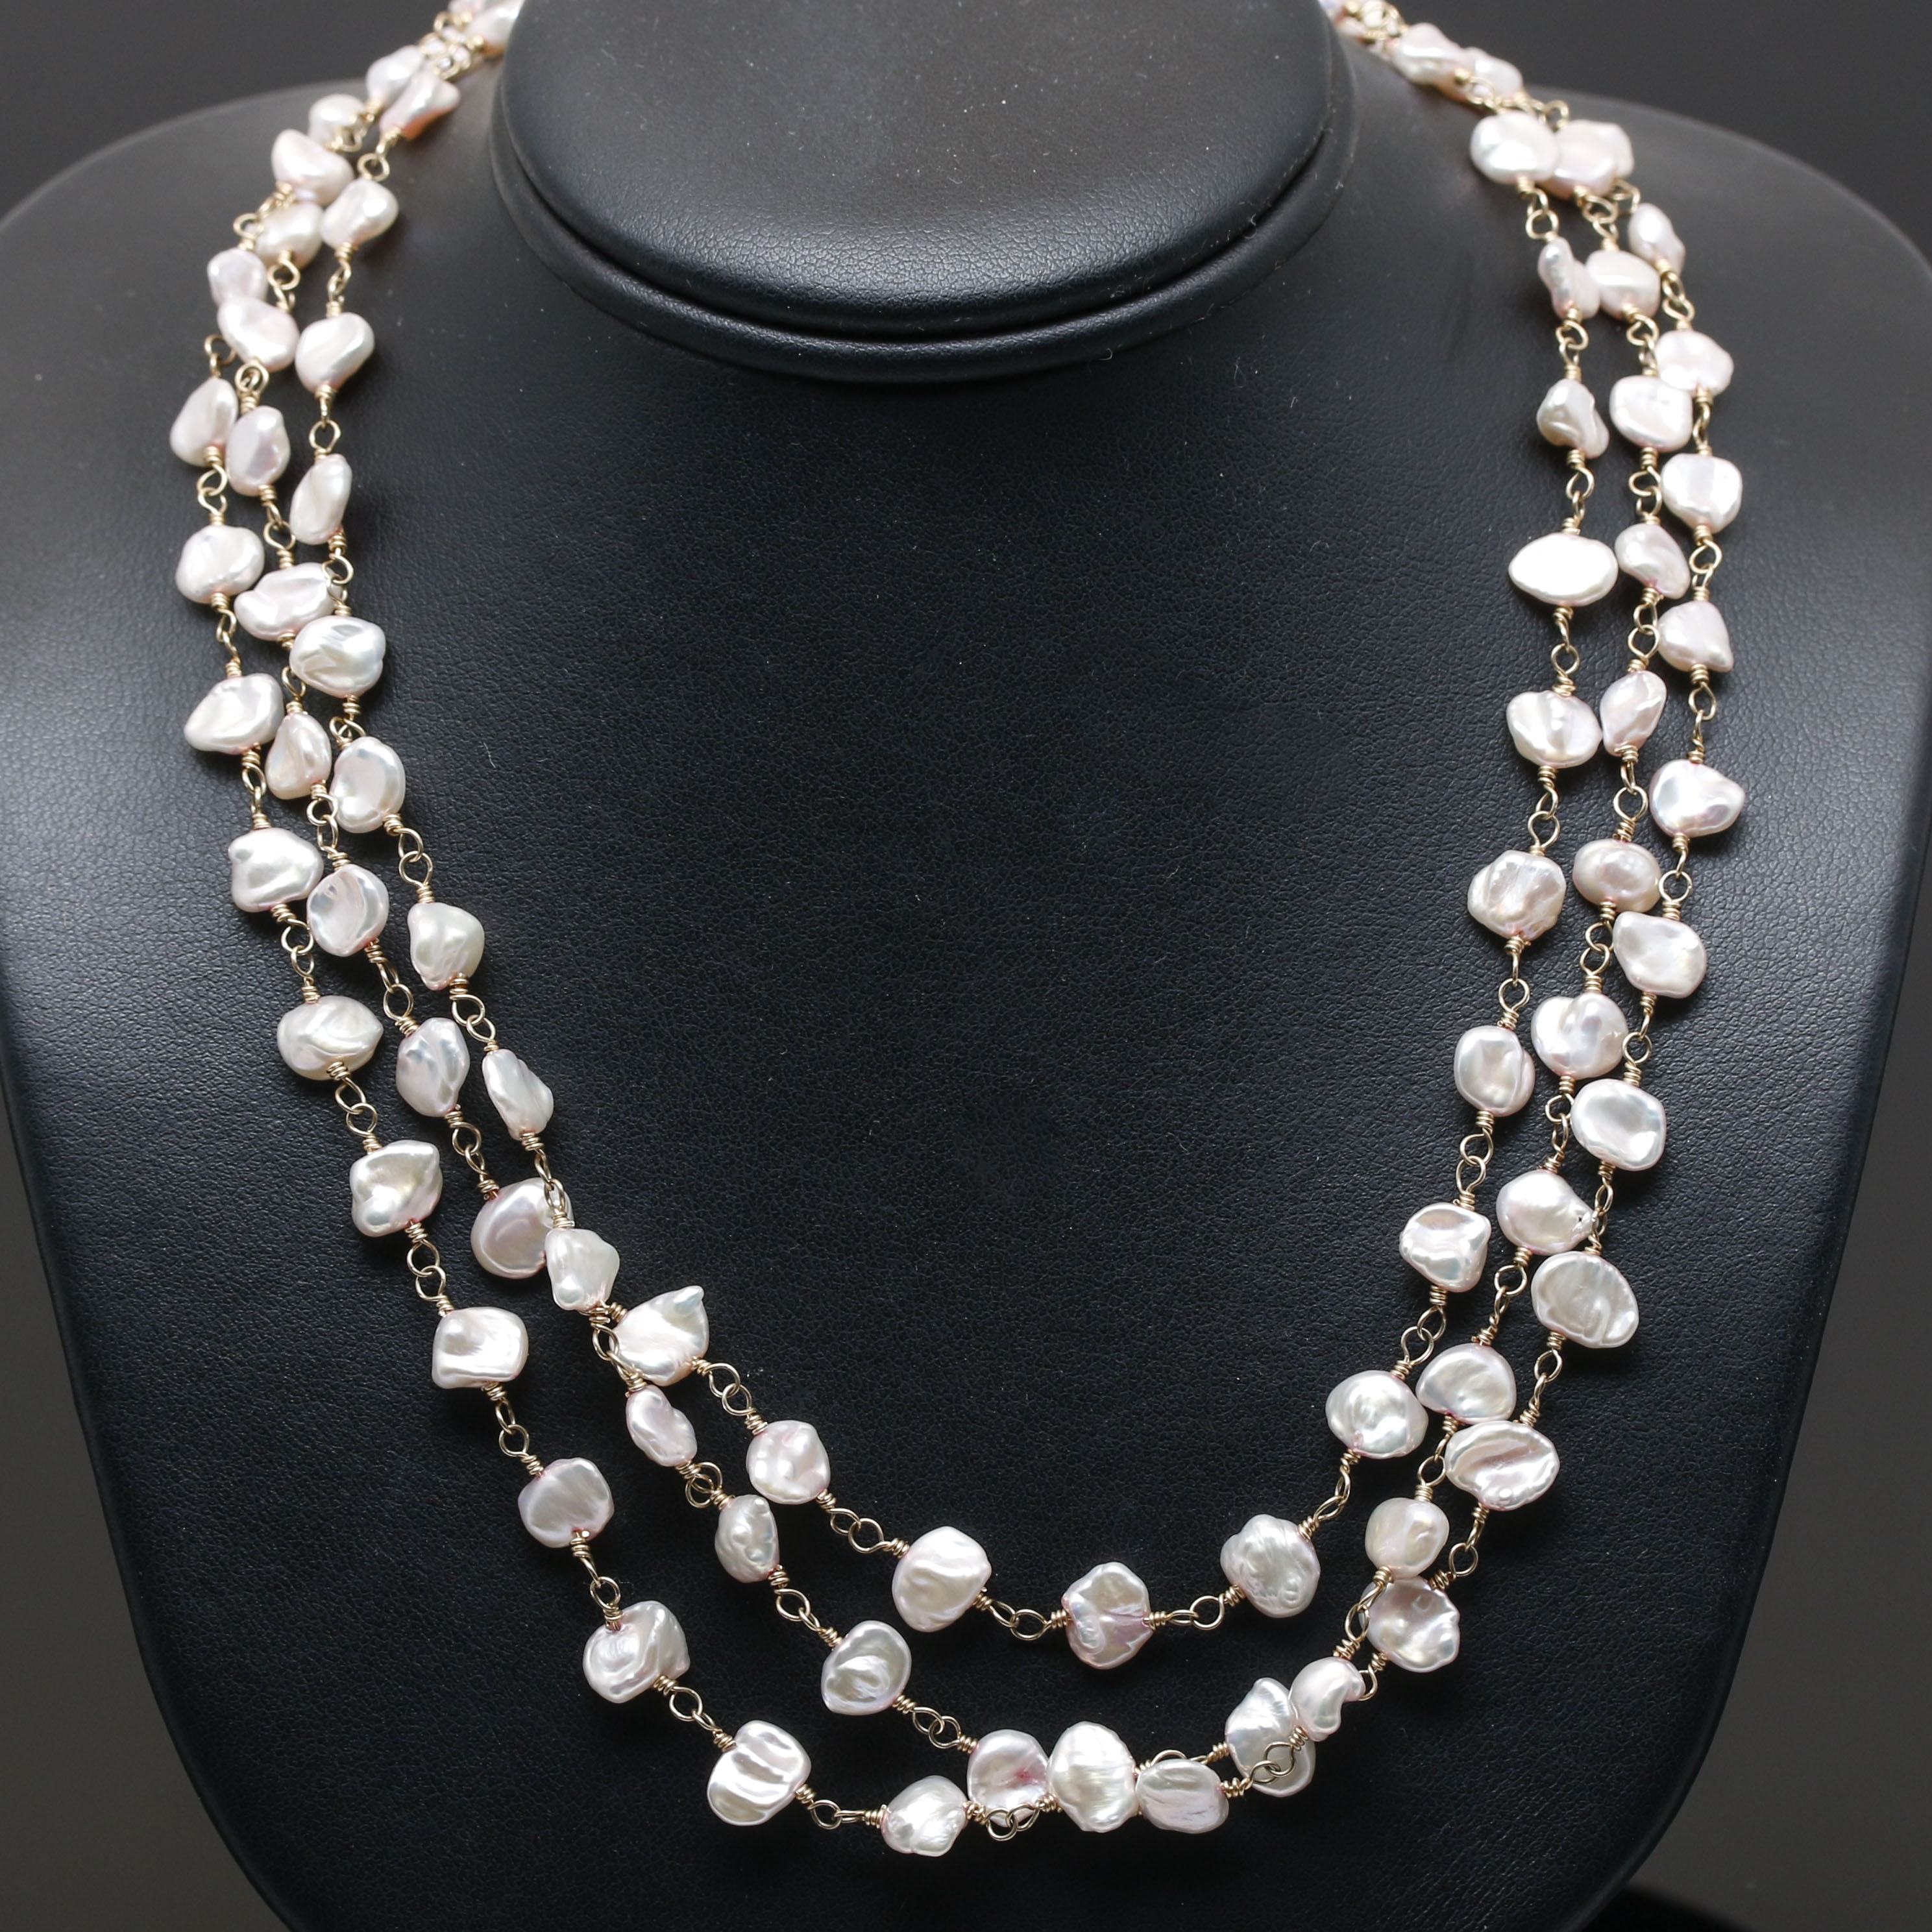 14K Yellow Gold Cultured Baroque Pearl Necklace